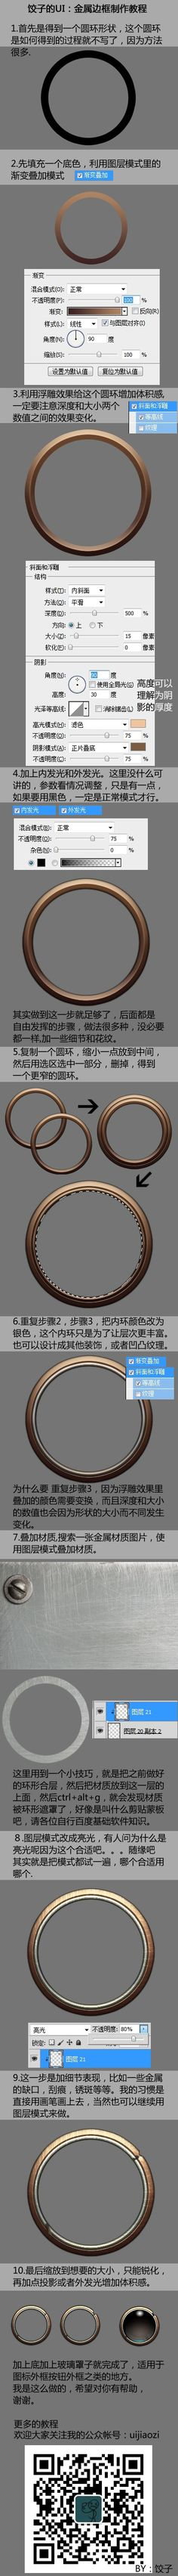 how to draw a ring Digital Painting Tutorials, Digital Art Tutorial, Art Tutorials, Game Design, Ui Design, Interface Design, Game Interface, Painting Process, Game Ui